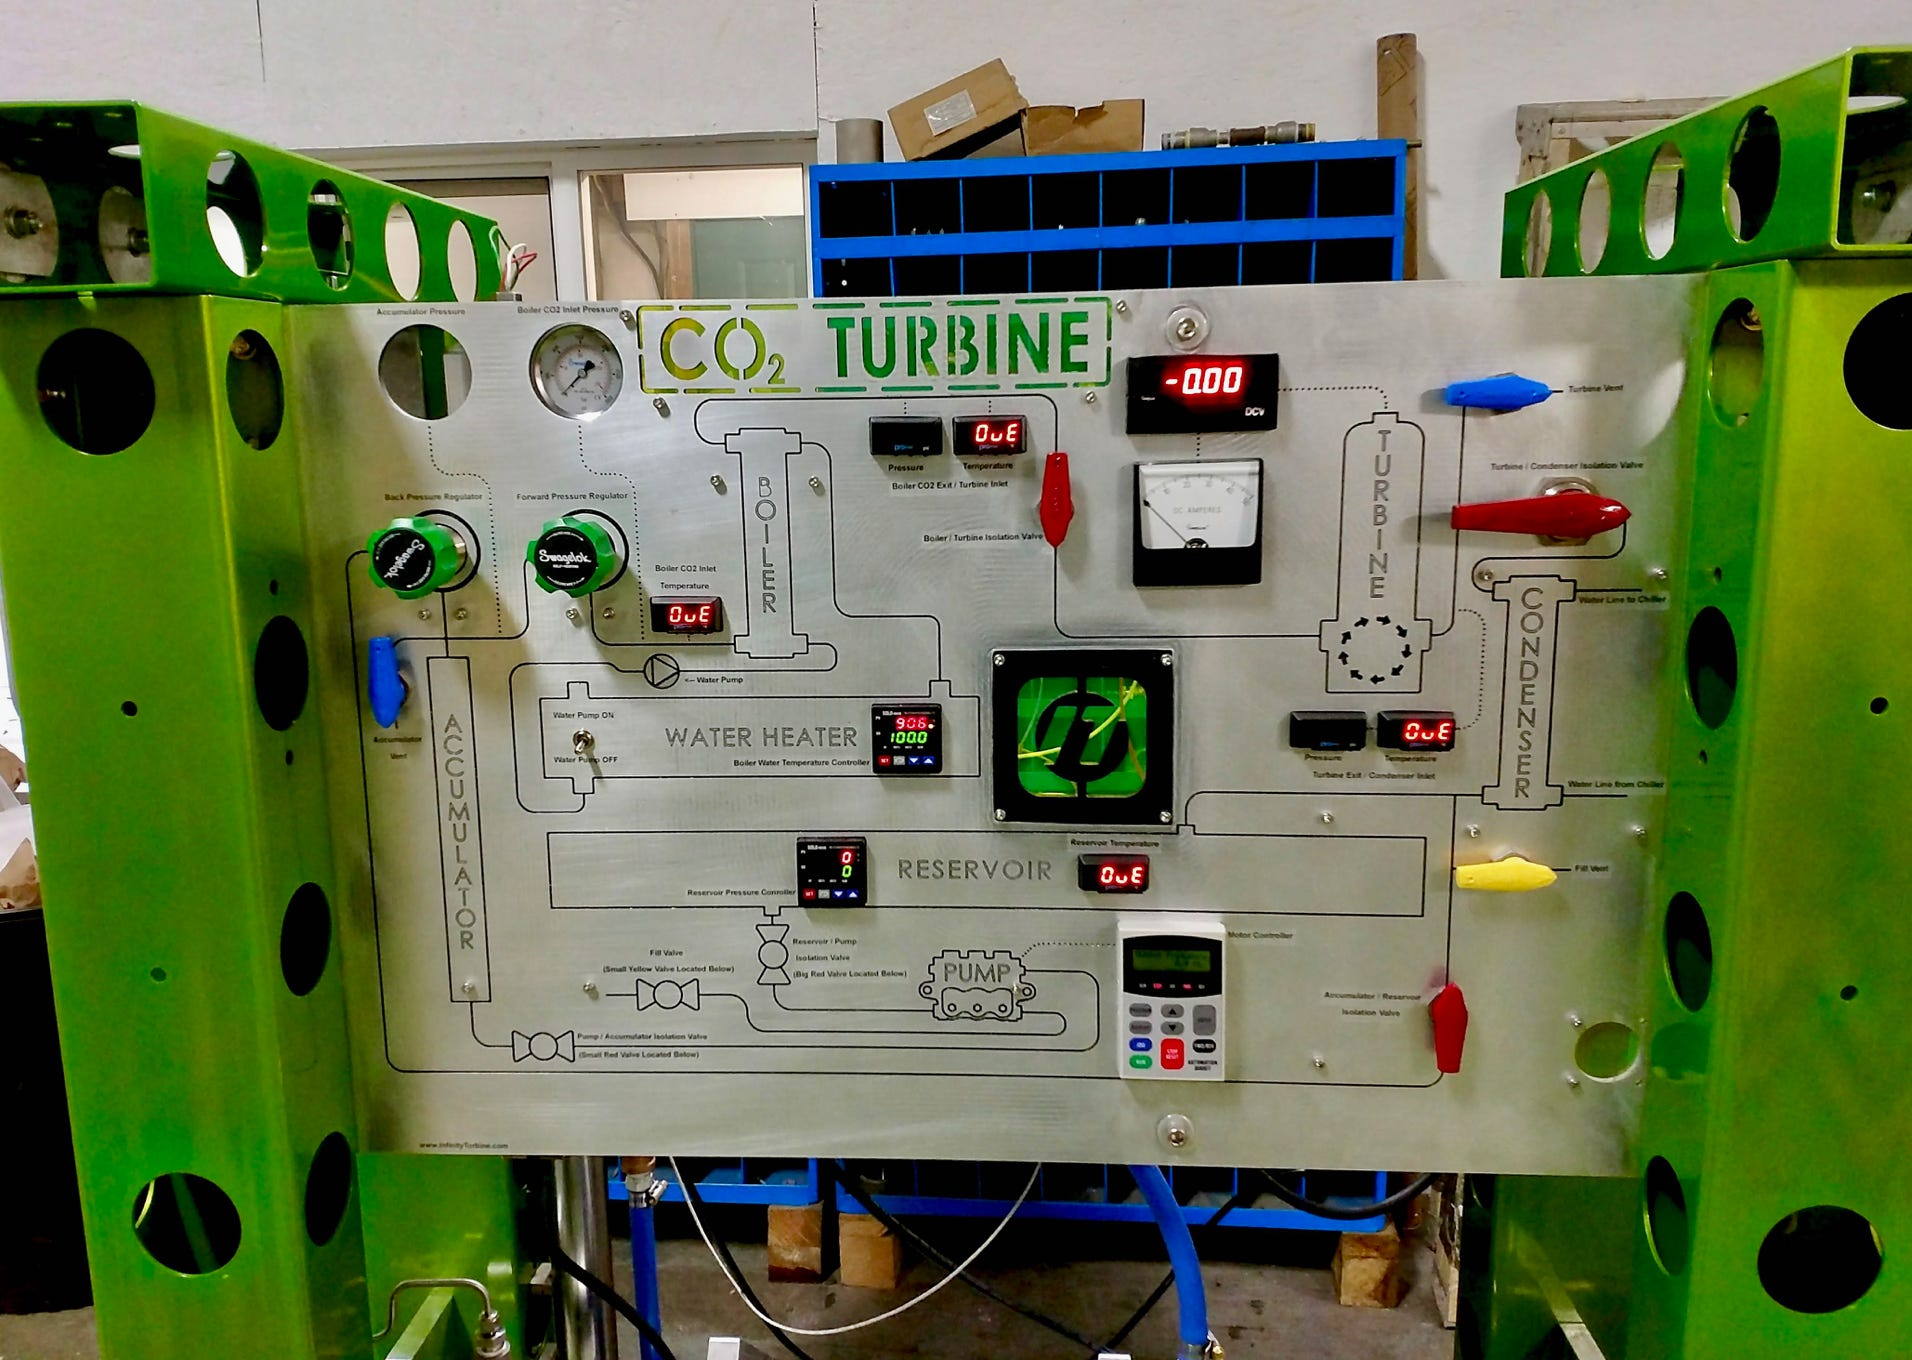 CO2 Phase Change Demonstrator for Supercritical CO2 expanders, gas to liquids, and Nafion experiments converting CO2 to alcohol